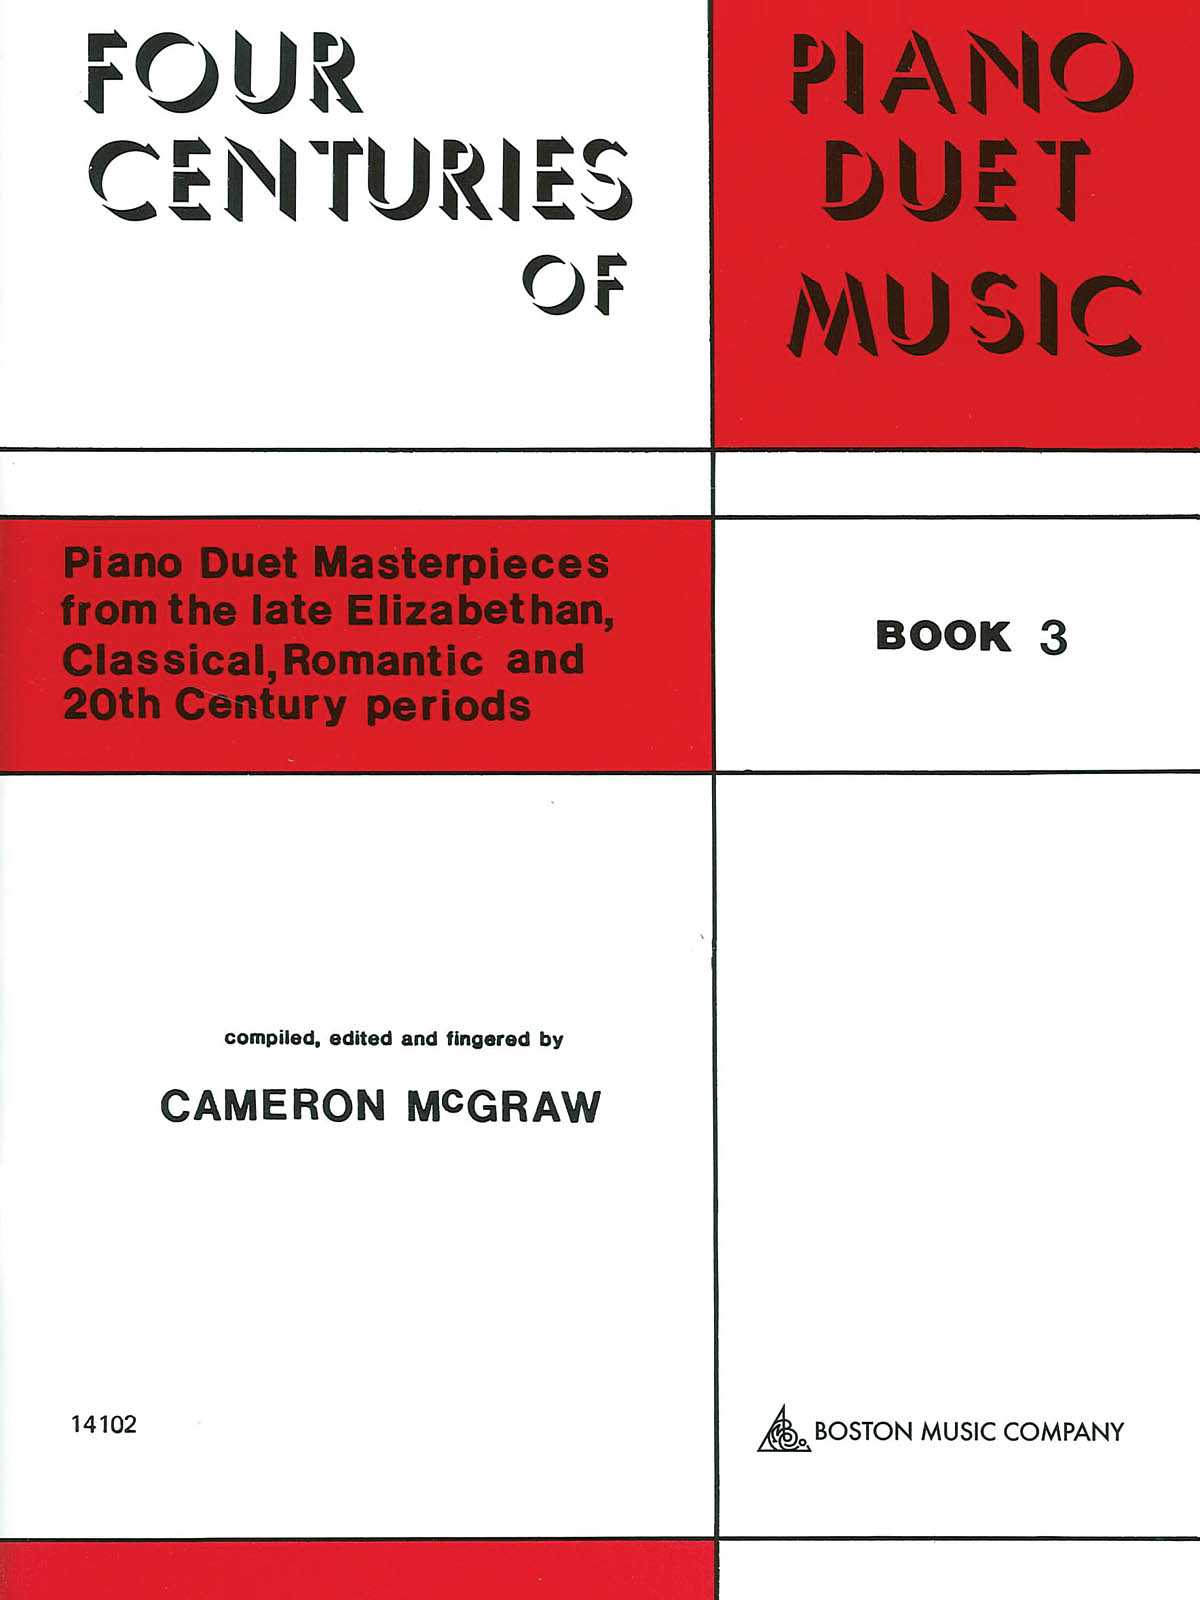 4 CENTURIES OF PIANO DUET MUSIC: BOOK 3